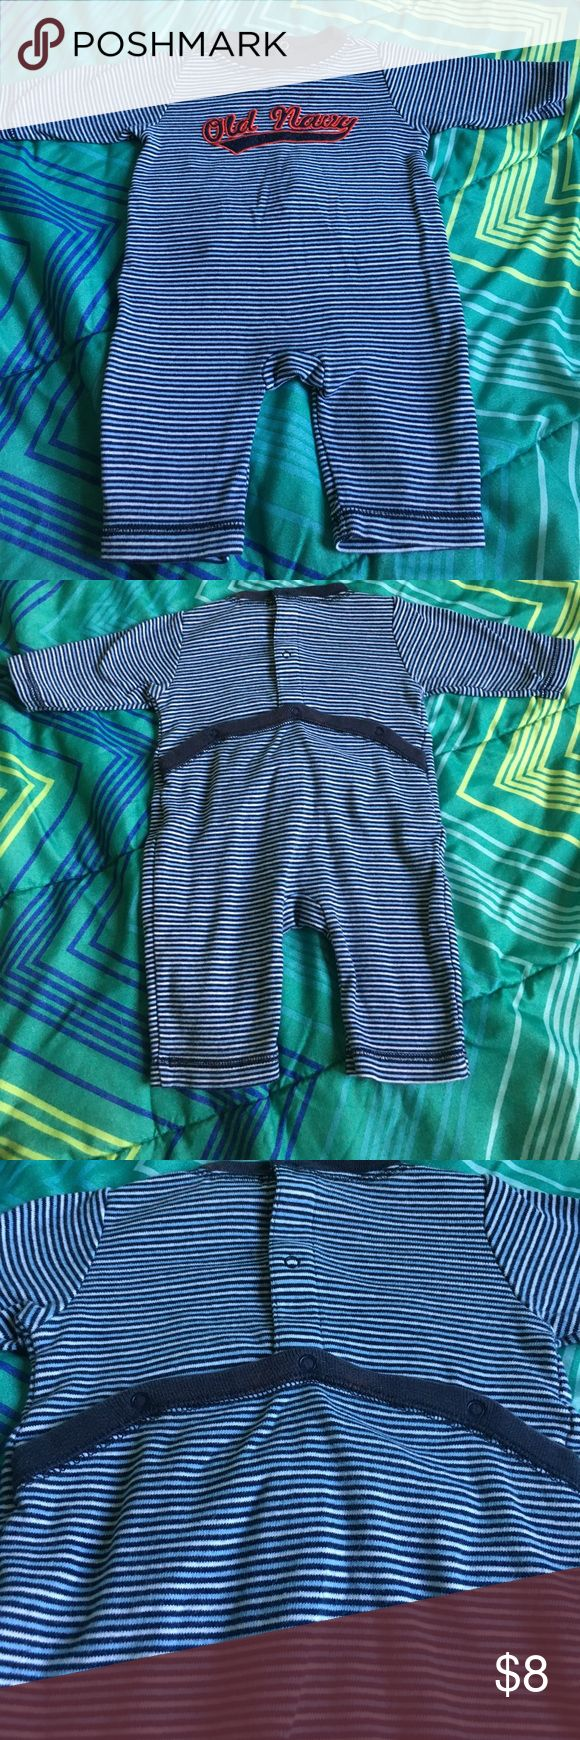 Old Navy One Piece Outfit. Super Cute!! 0-3 Months Old Navy One Piece Outfit. Super Cute!! 0-3 Months. Great Condition with the exception of a small stain on the backside of the neck trim (see photo 5)... looks like a bleach stain. Bundle to save $$$$. Smoke free home. Old Navy One Pieces